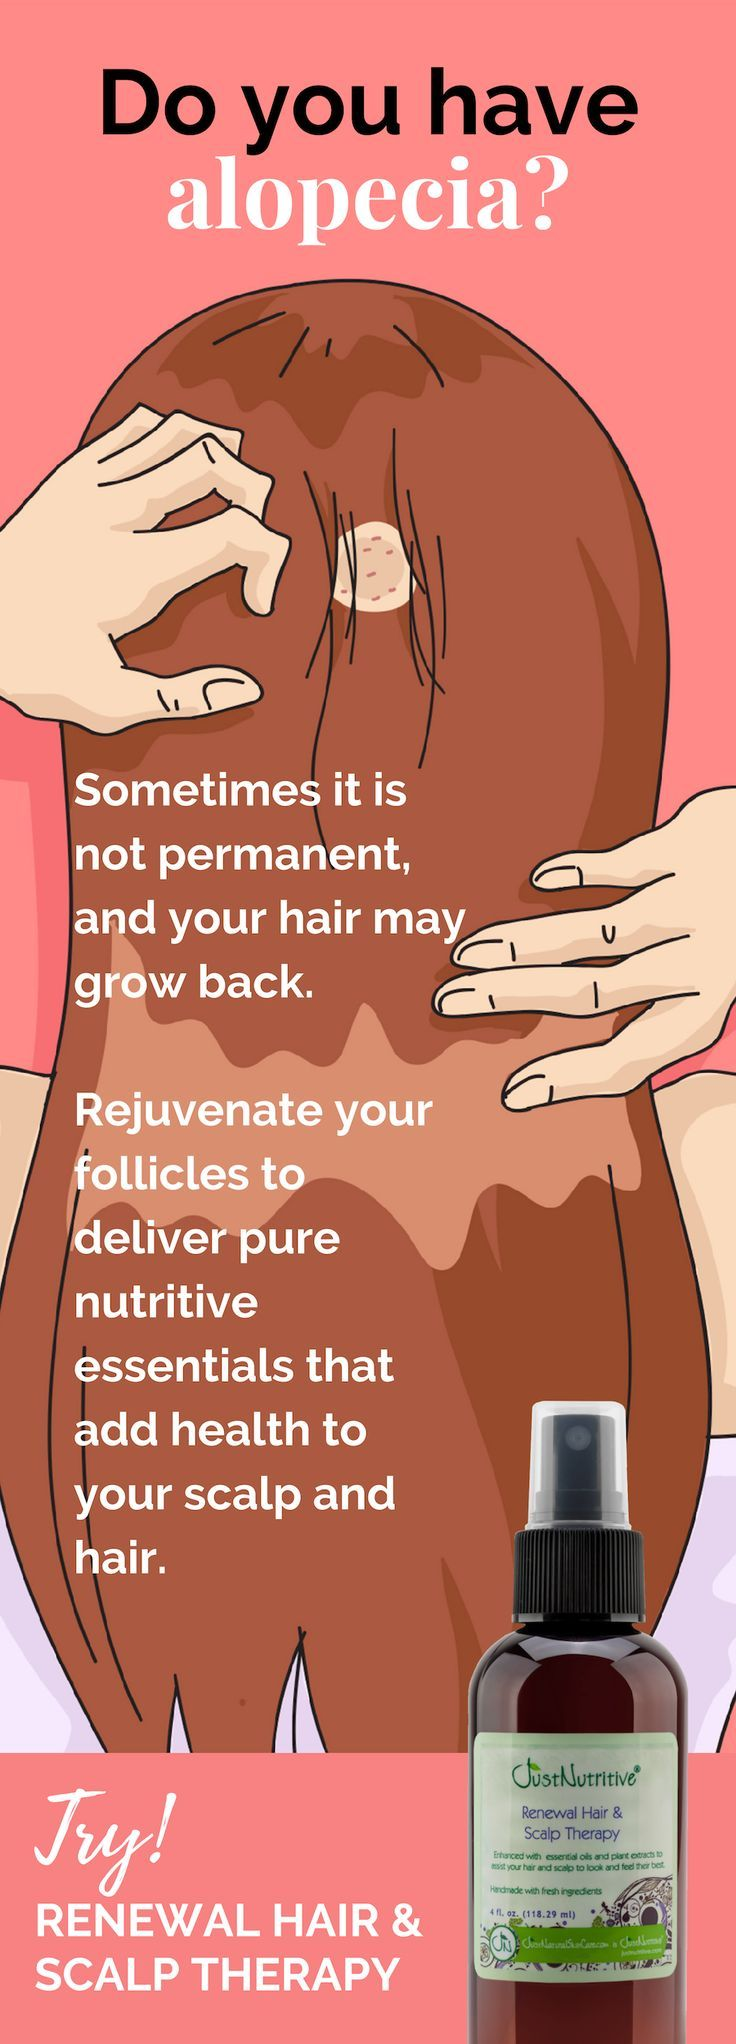 Pin by Alexis on Projects to try Alopecia, Thinning hair